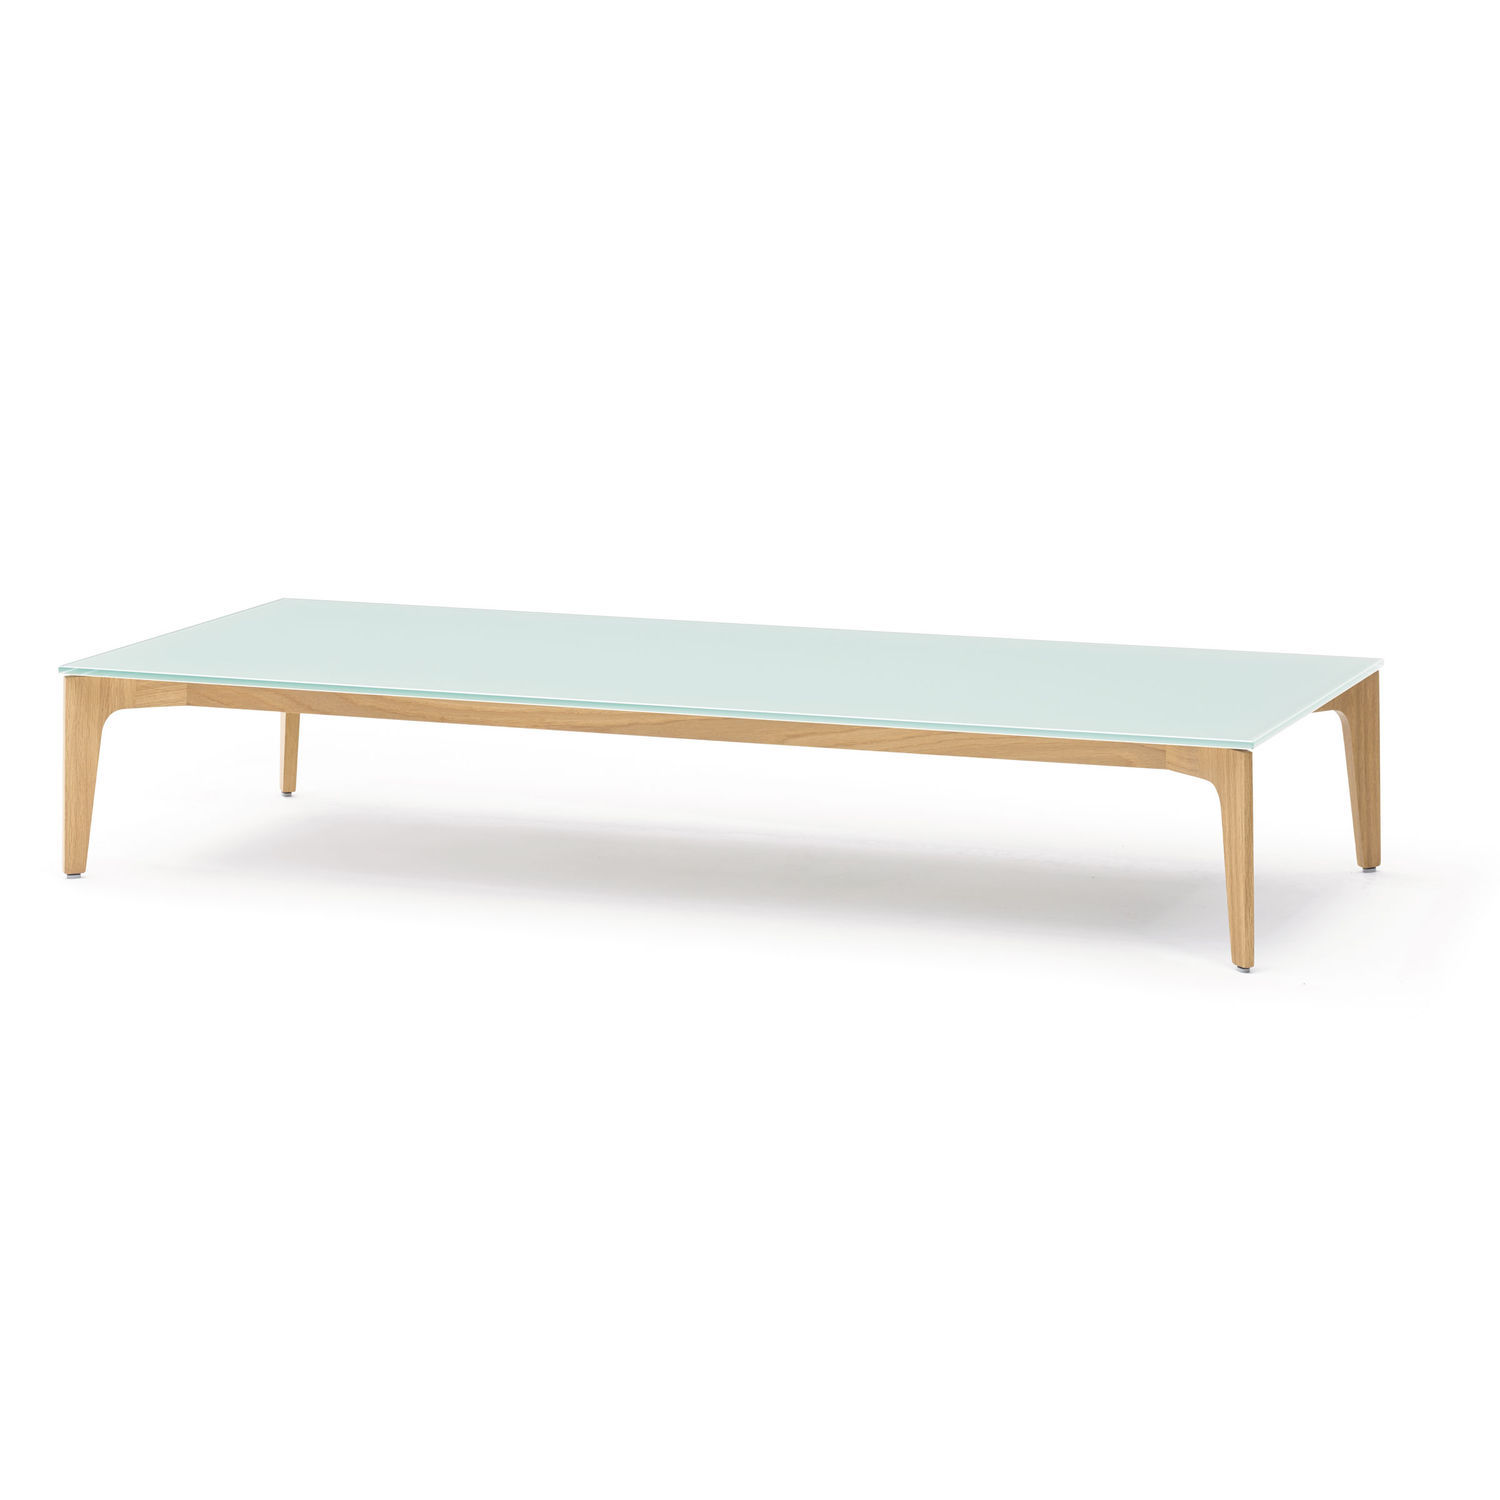 Contemporary coffee table glass rectangular ELM by Jehs